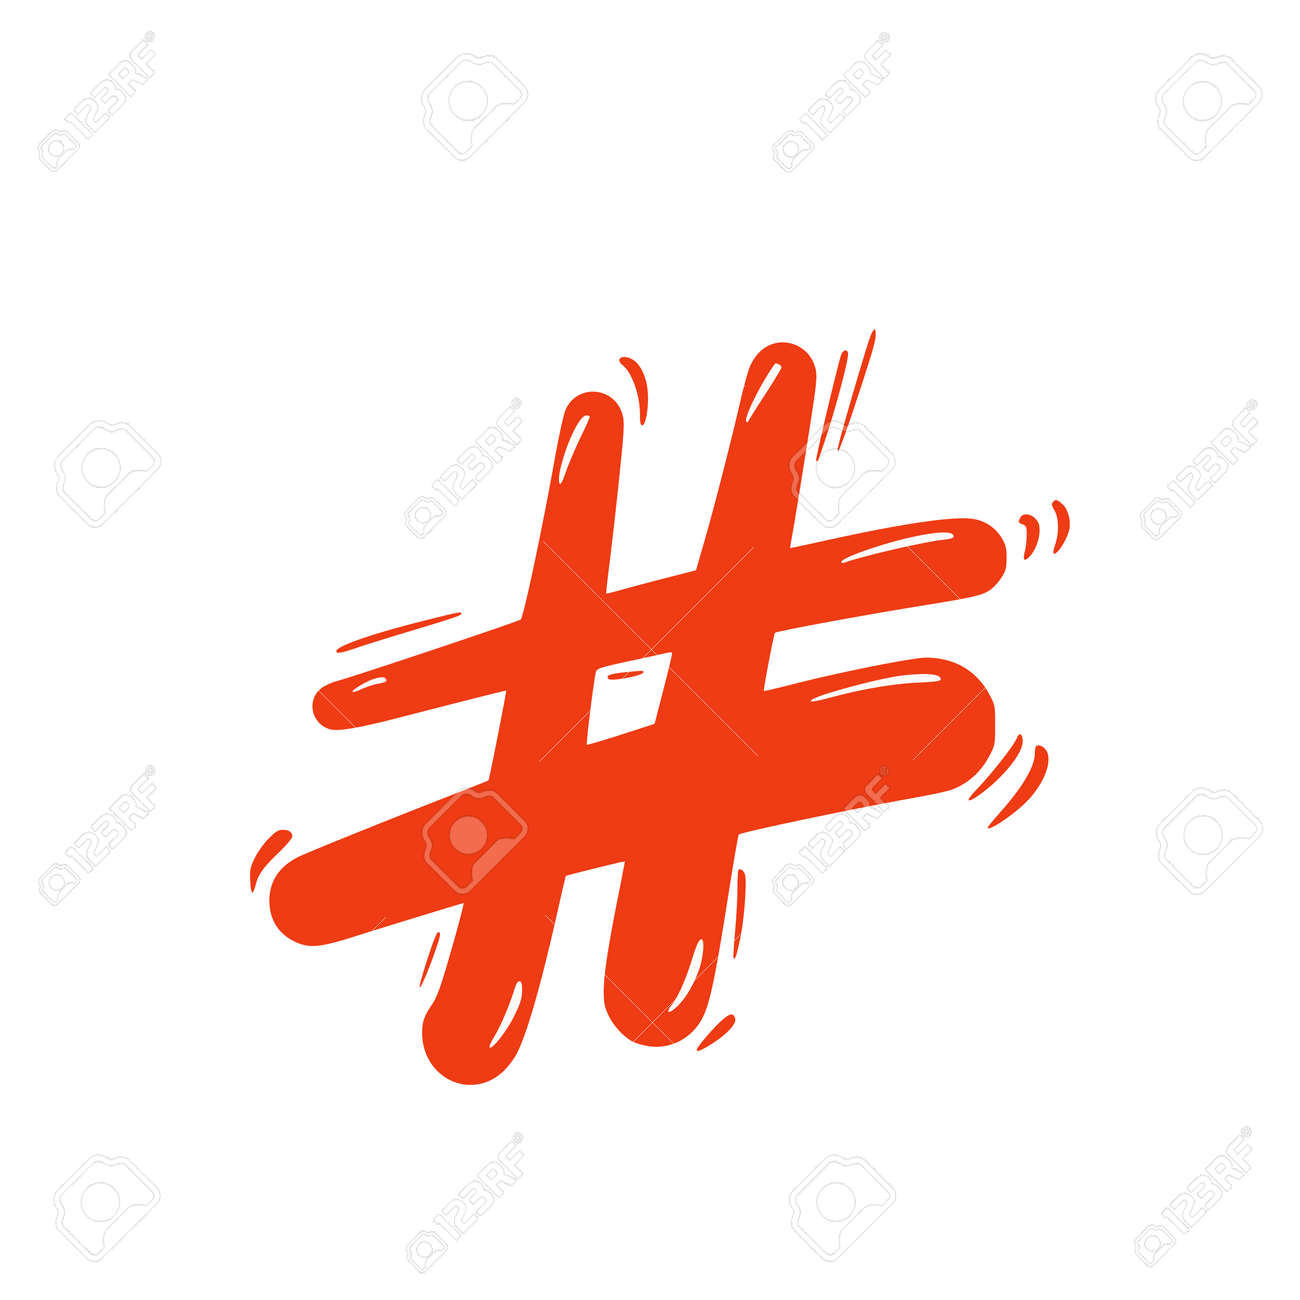 Hashtag or number sign isolated on white background. social media hash tag symbol. Vector illustration. - 170370115